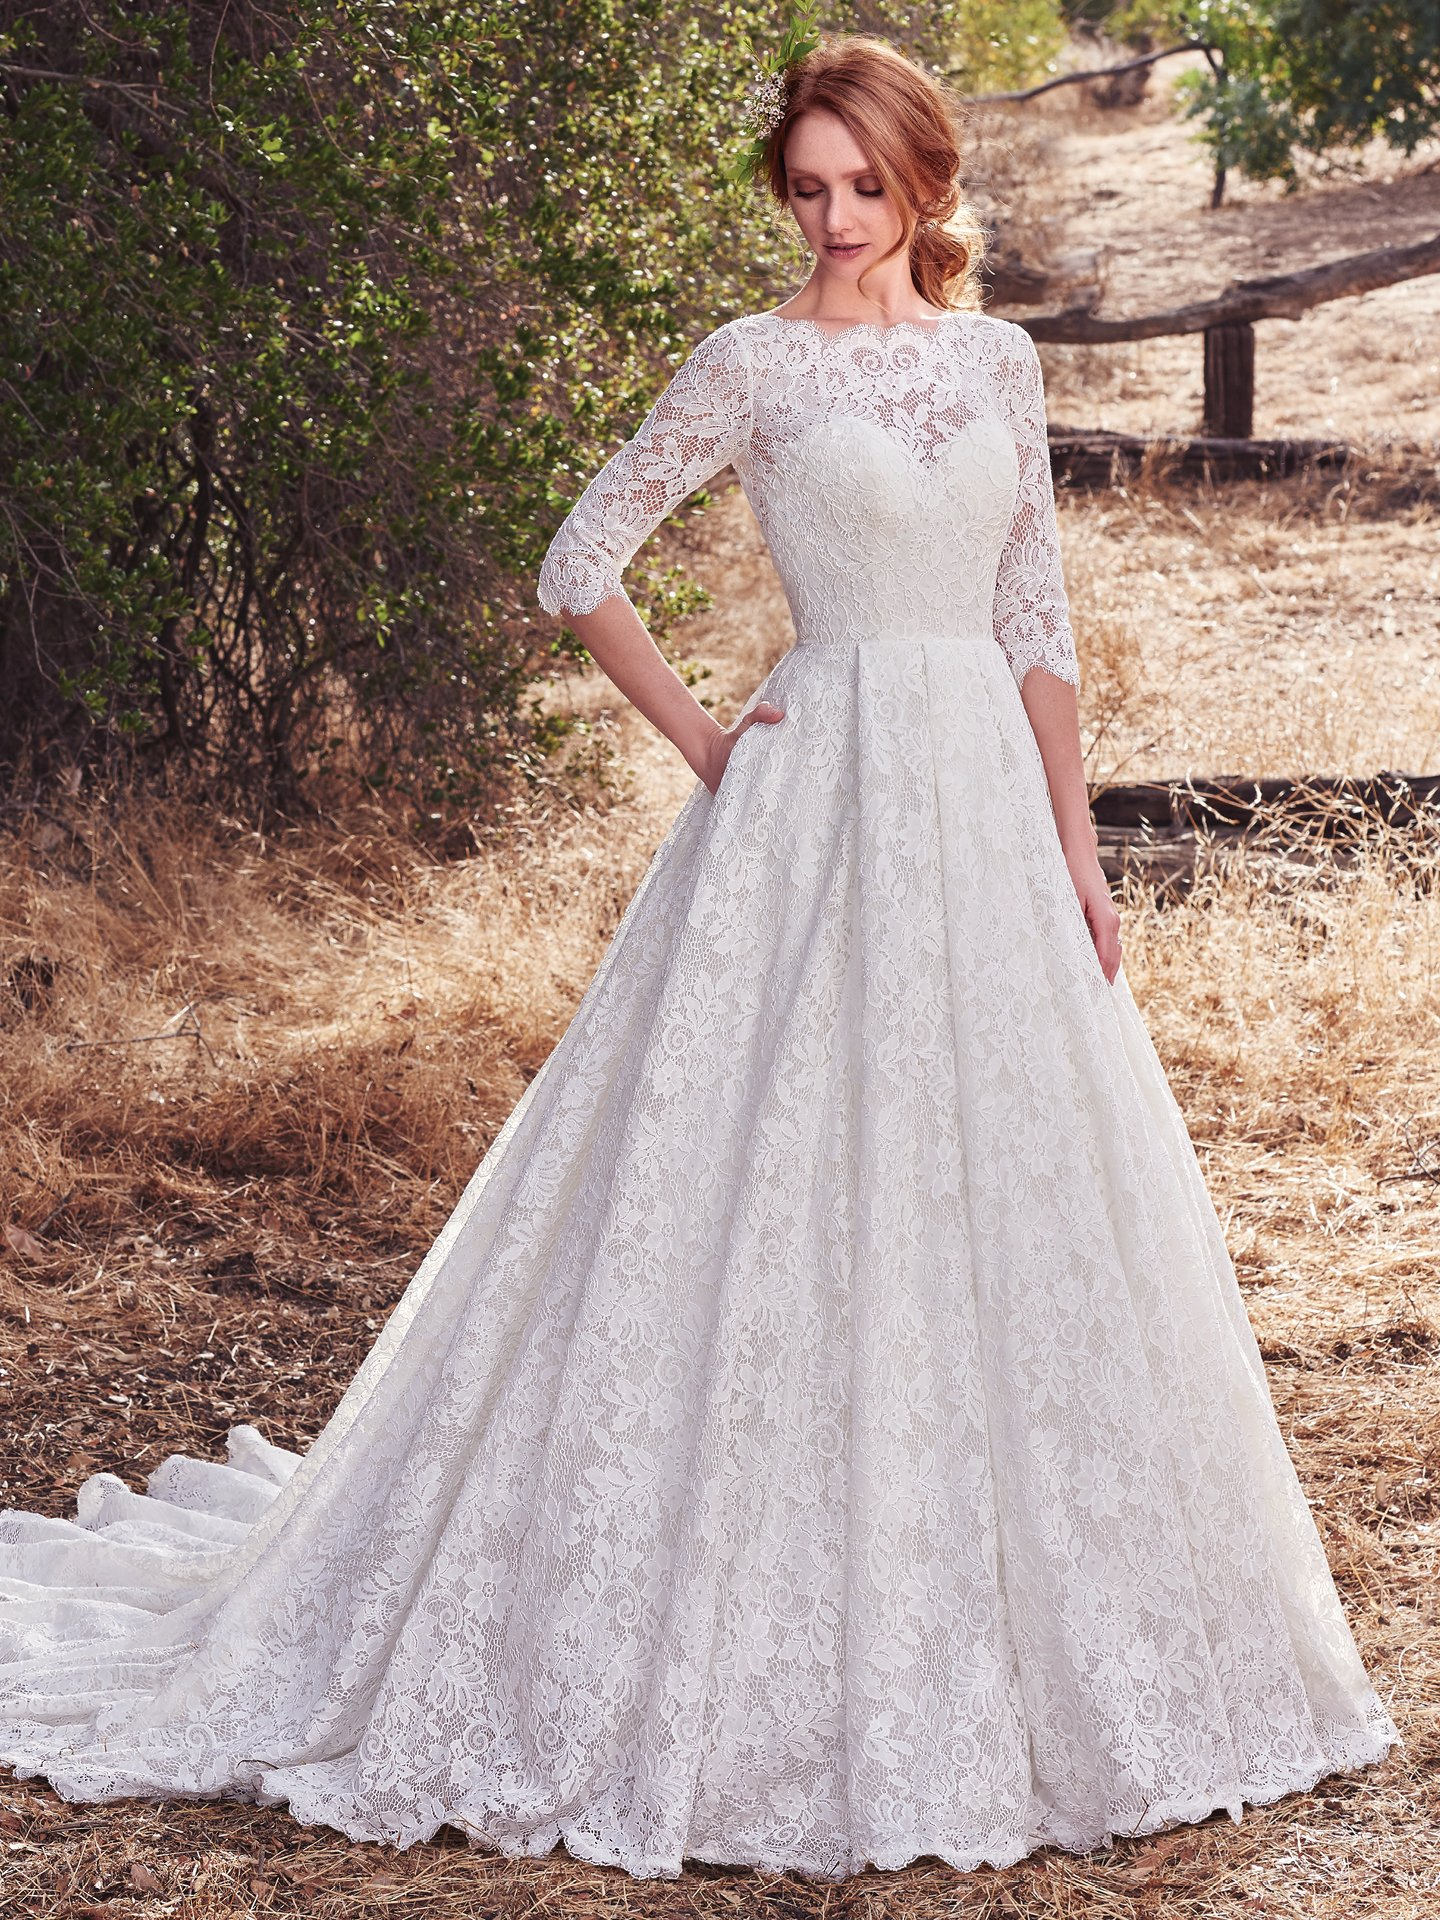 Famous Weddings Throughout History - Cordelia wedding dress by Rebecca Ingram mimics Grace Kelly's classic style